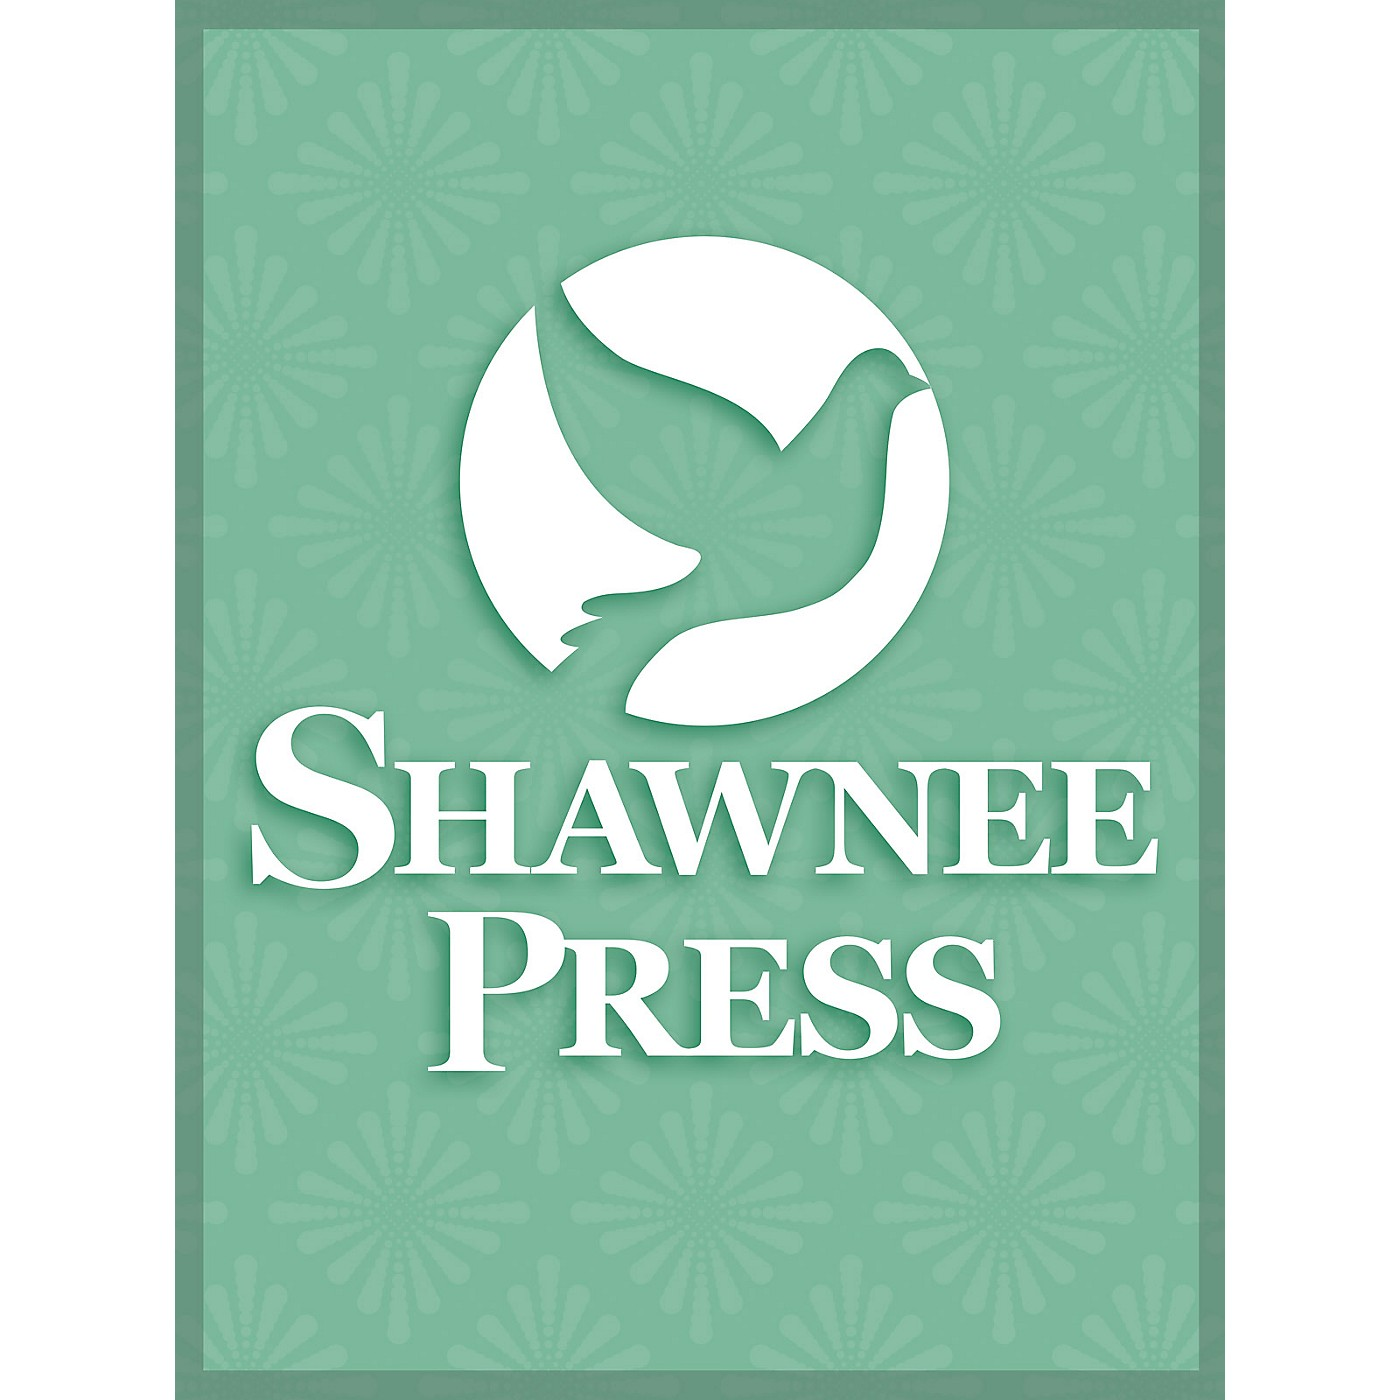 Shawnee Press Concerto Grosso (Low Brass Trio) Shawnee Press Series Arranged by Morris thumbnail